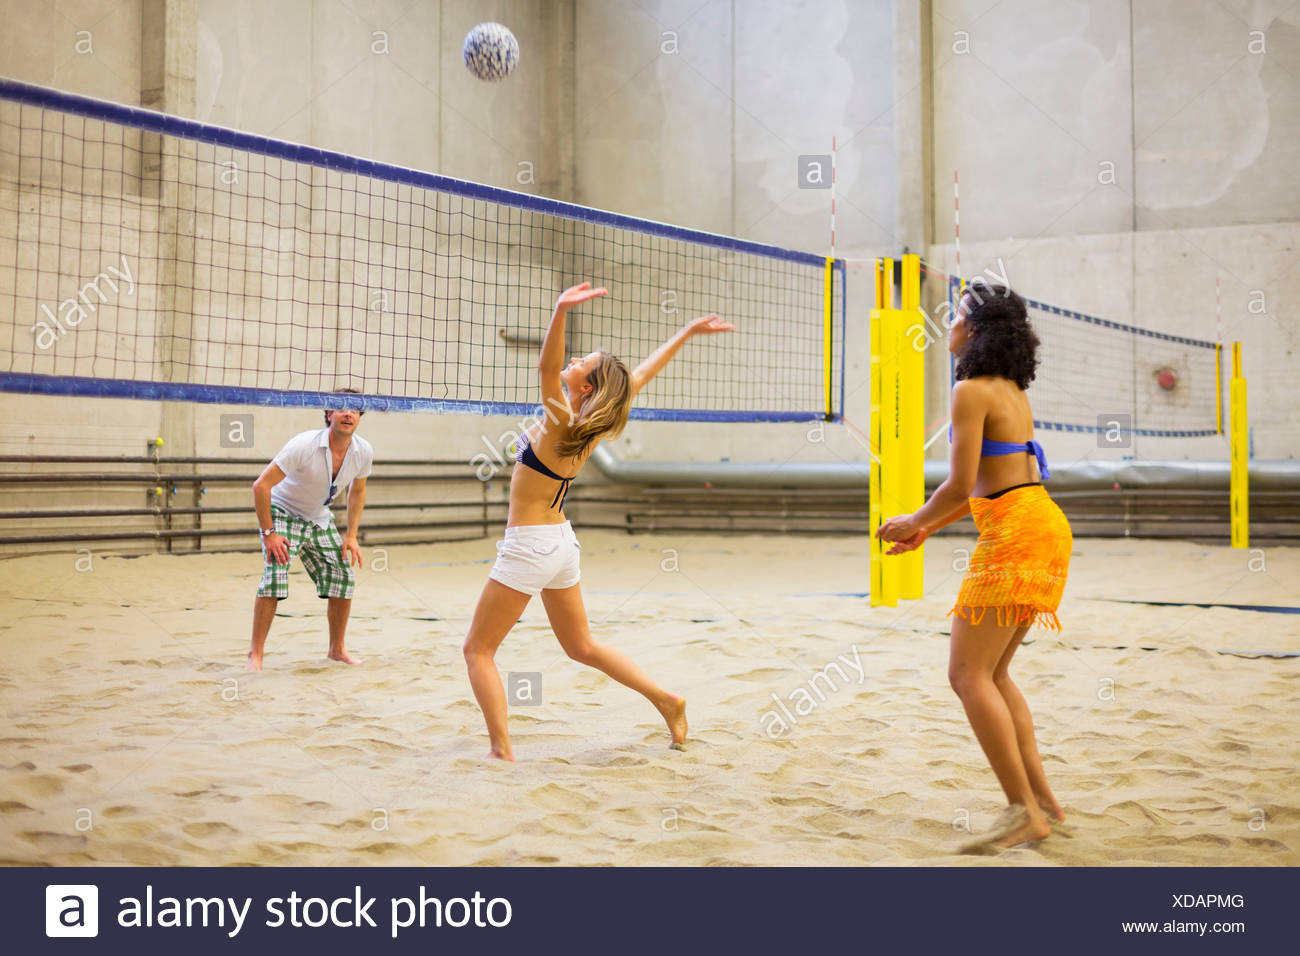 the history of indoor volleyball Want to know where volleyball came from here are some quick facts about its history, how it was developed, and how it is played the emergence of beach volleyball - with the sand, sun, and cool-looking competitors making it far more popular than the indoor version - actually led the authorities to.